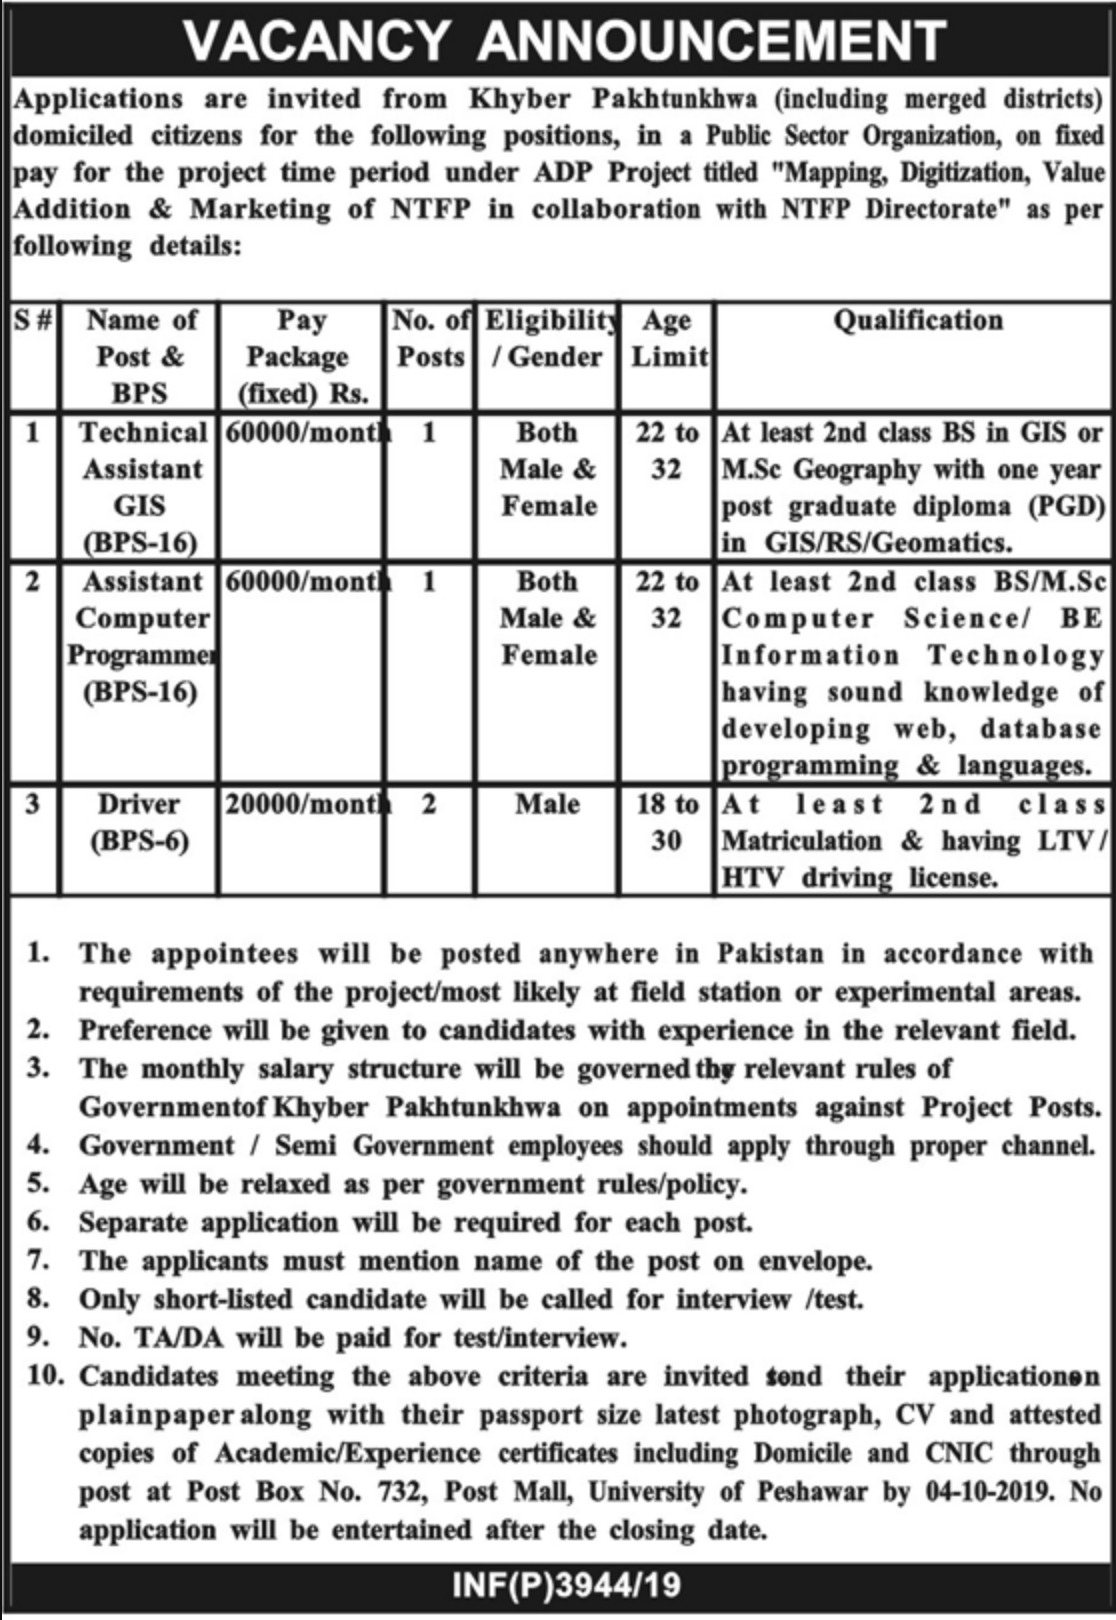 Public Sector Organization Jobs 2019 P.O.Box 732 Peshawar KPK